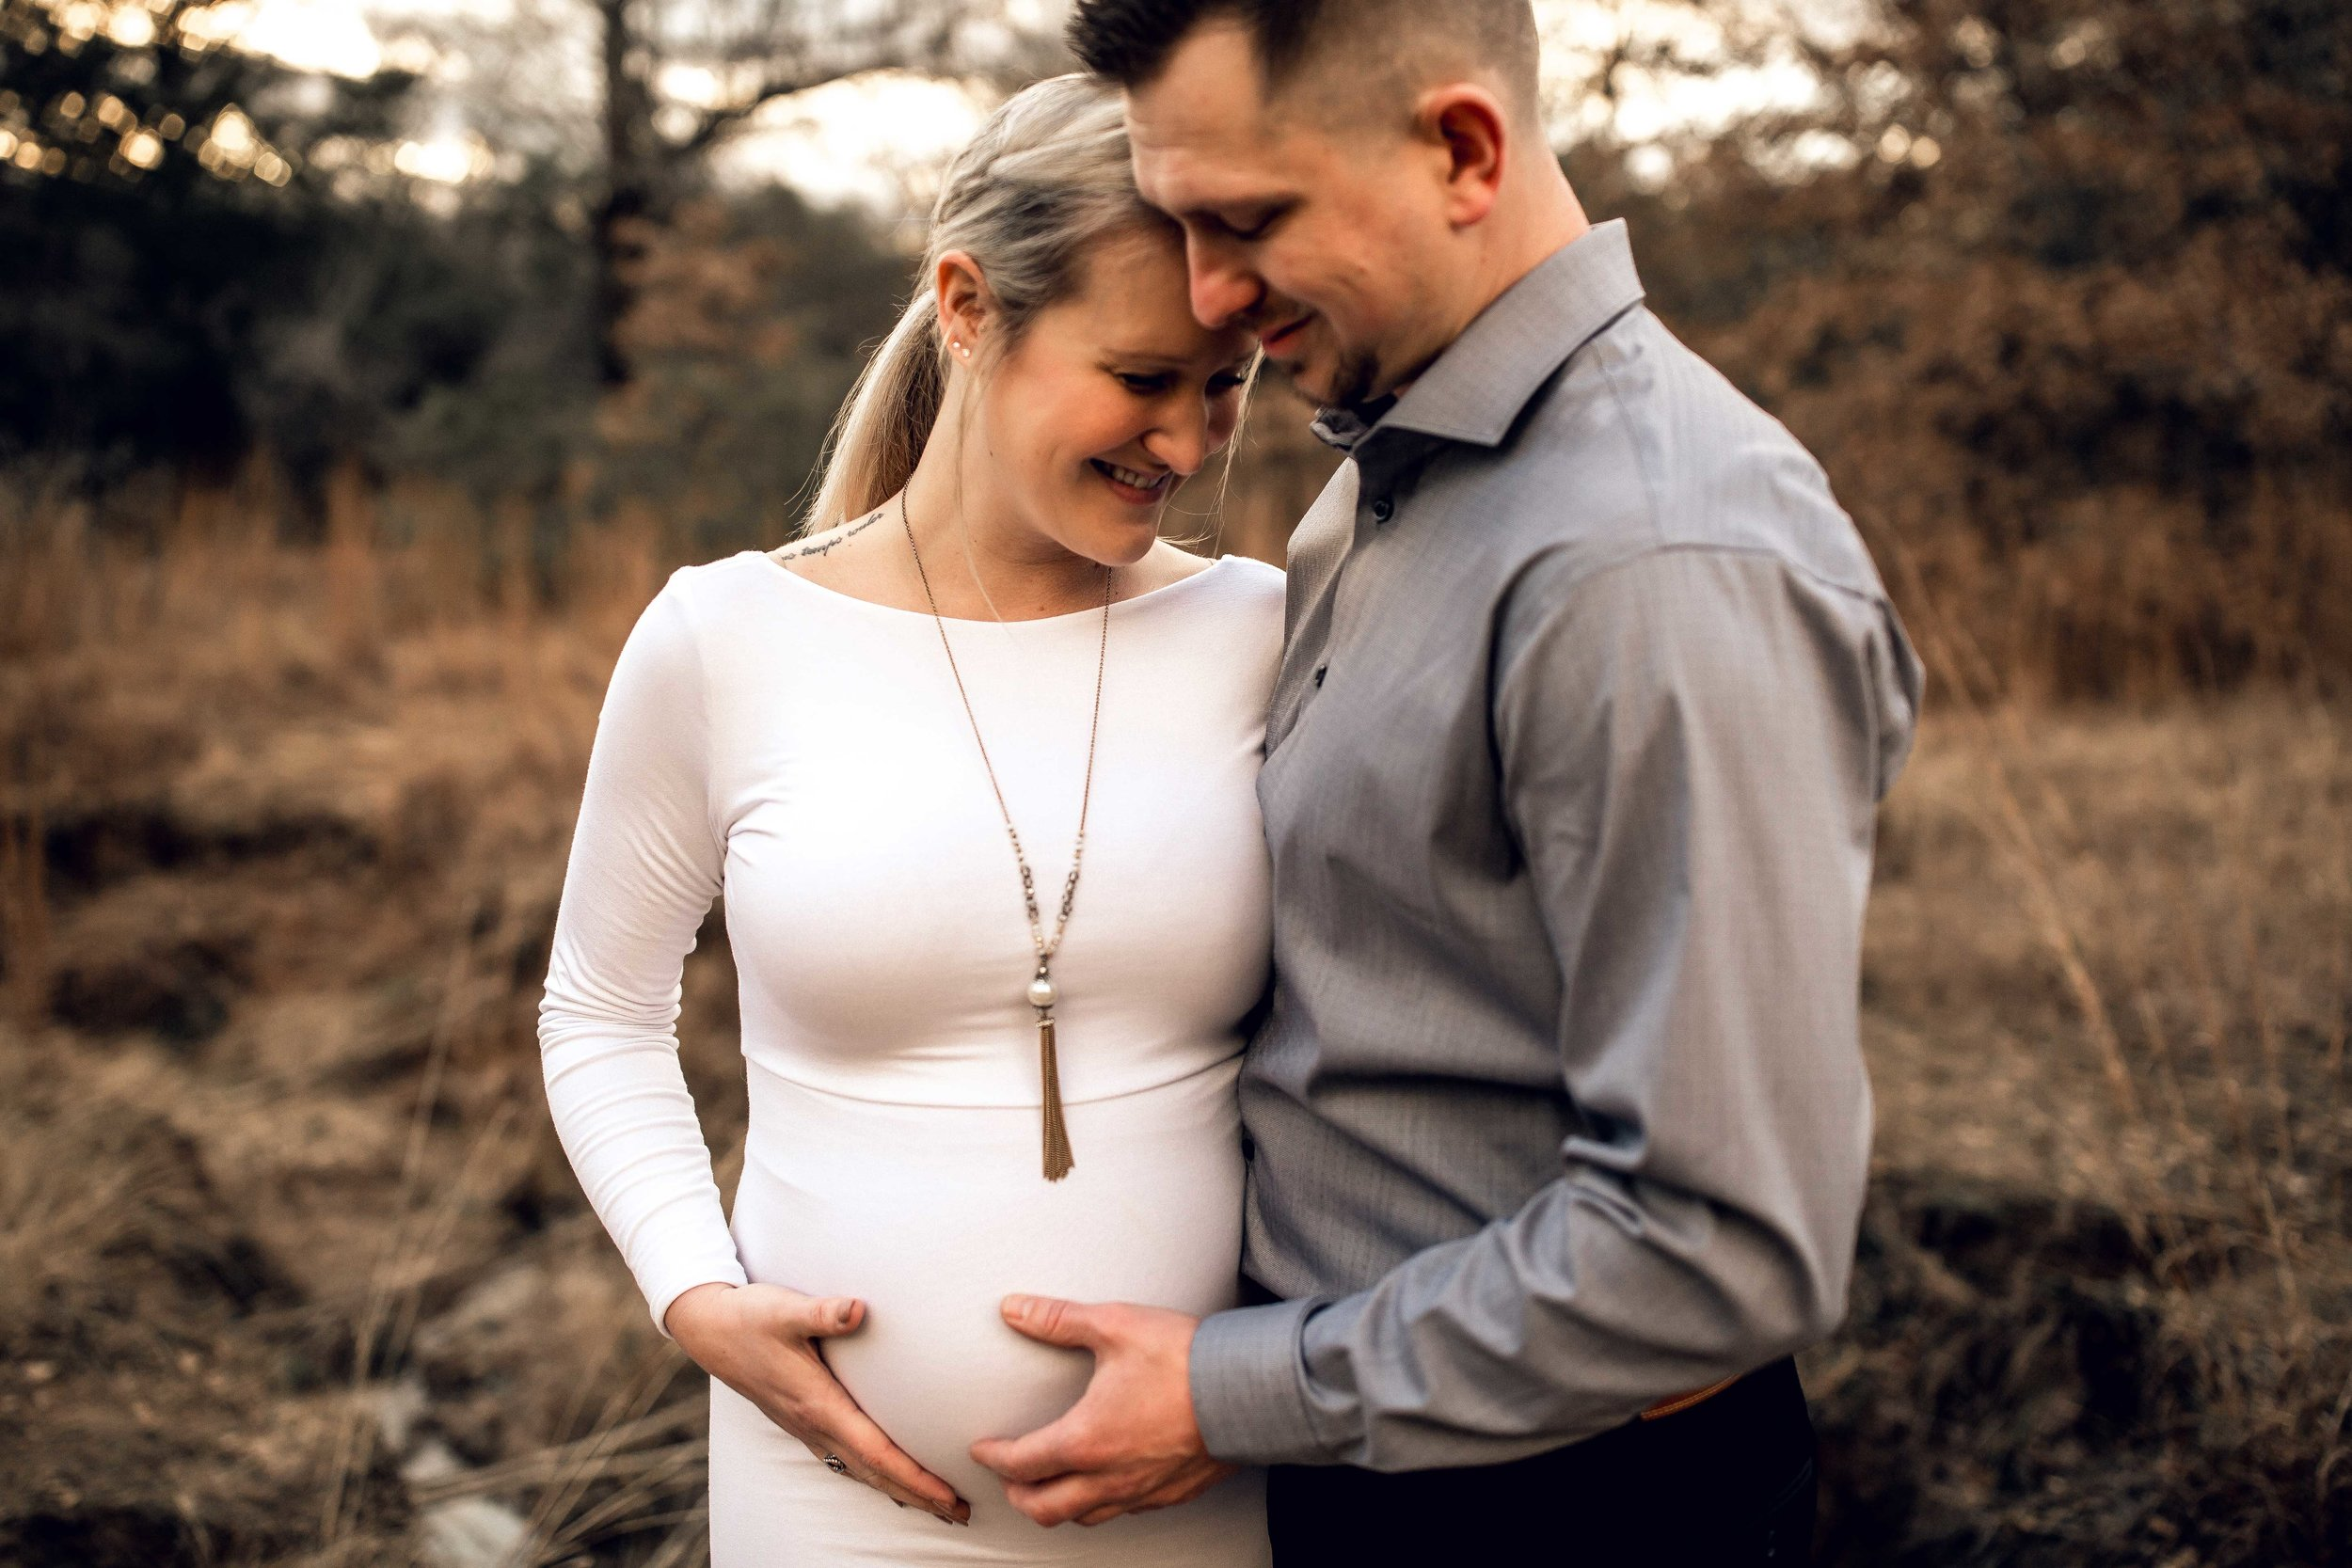 shelby-schiller-photography-maternity-cozying-up.jpg